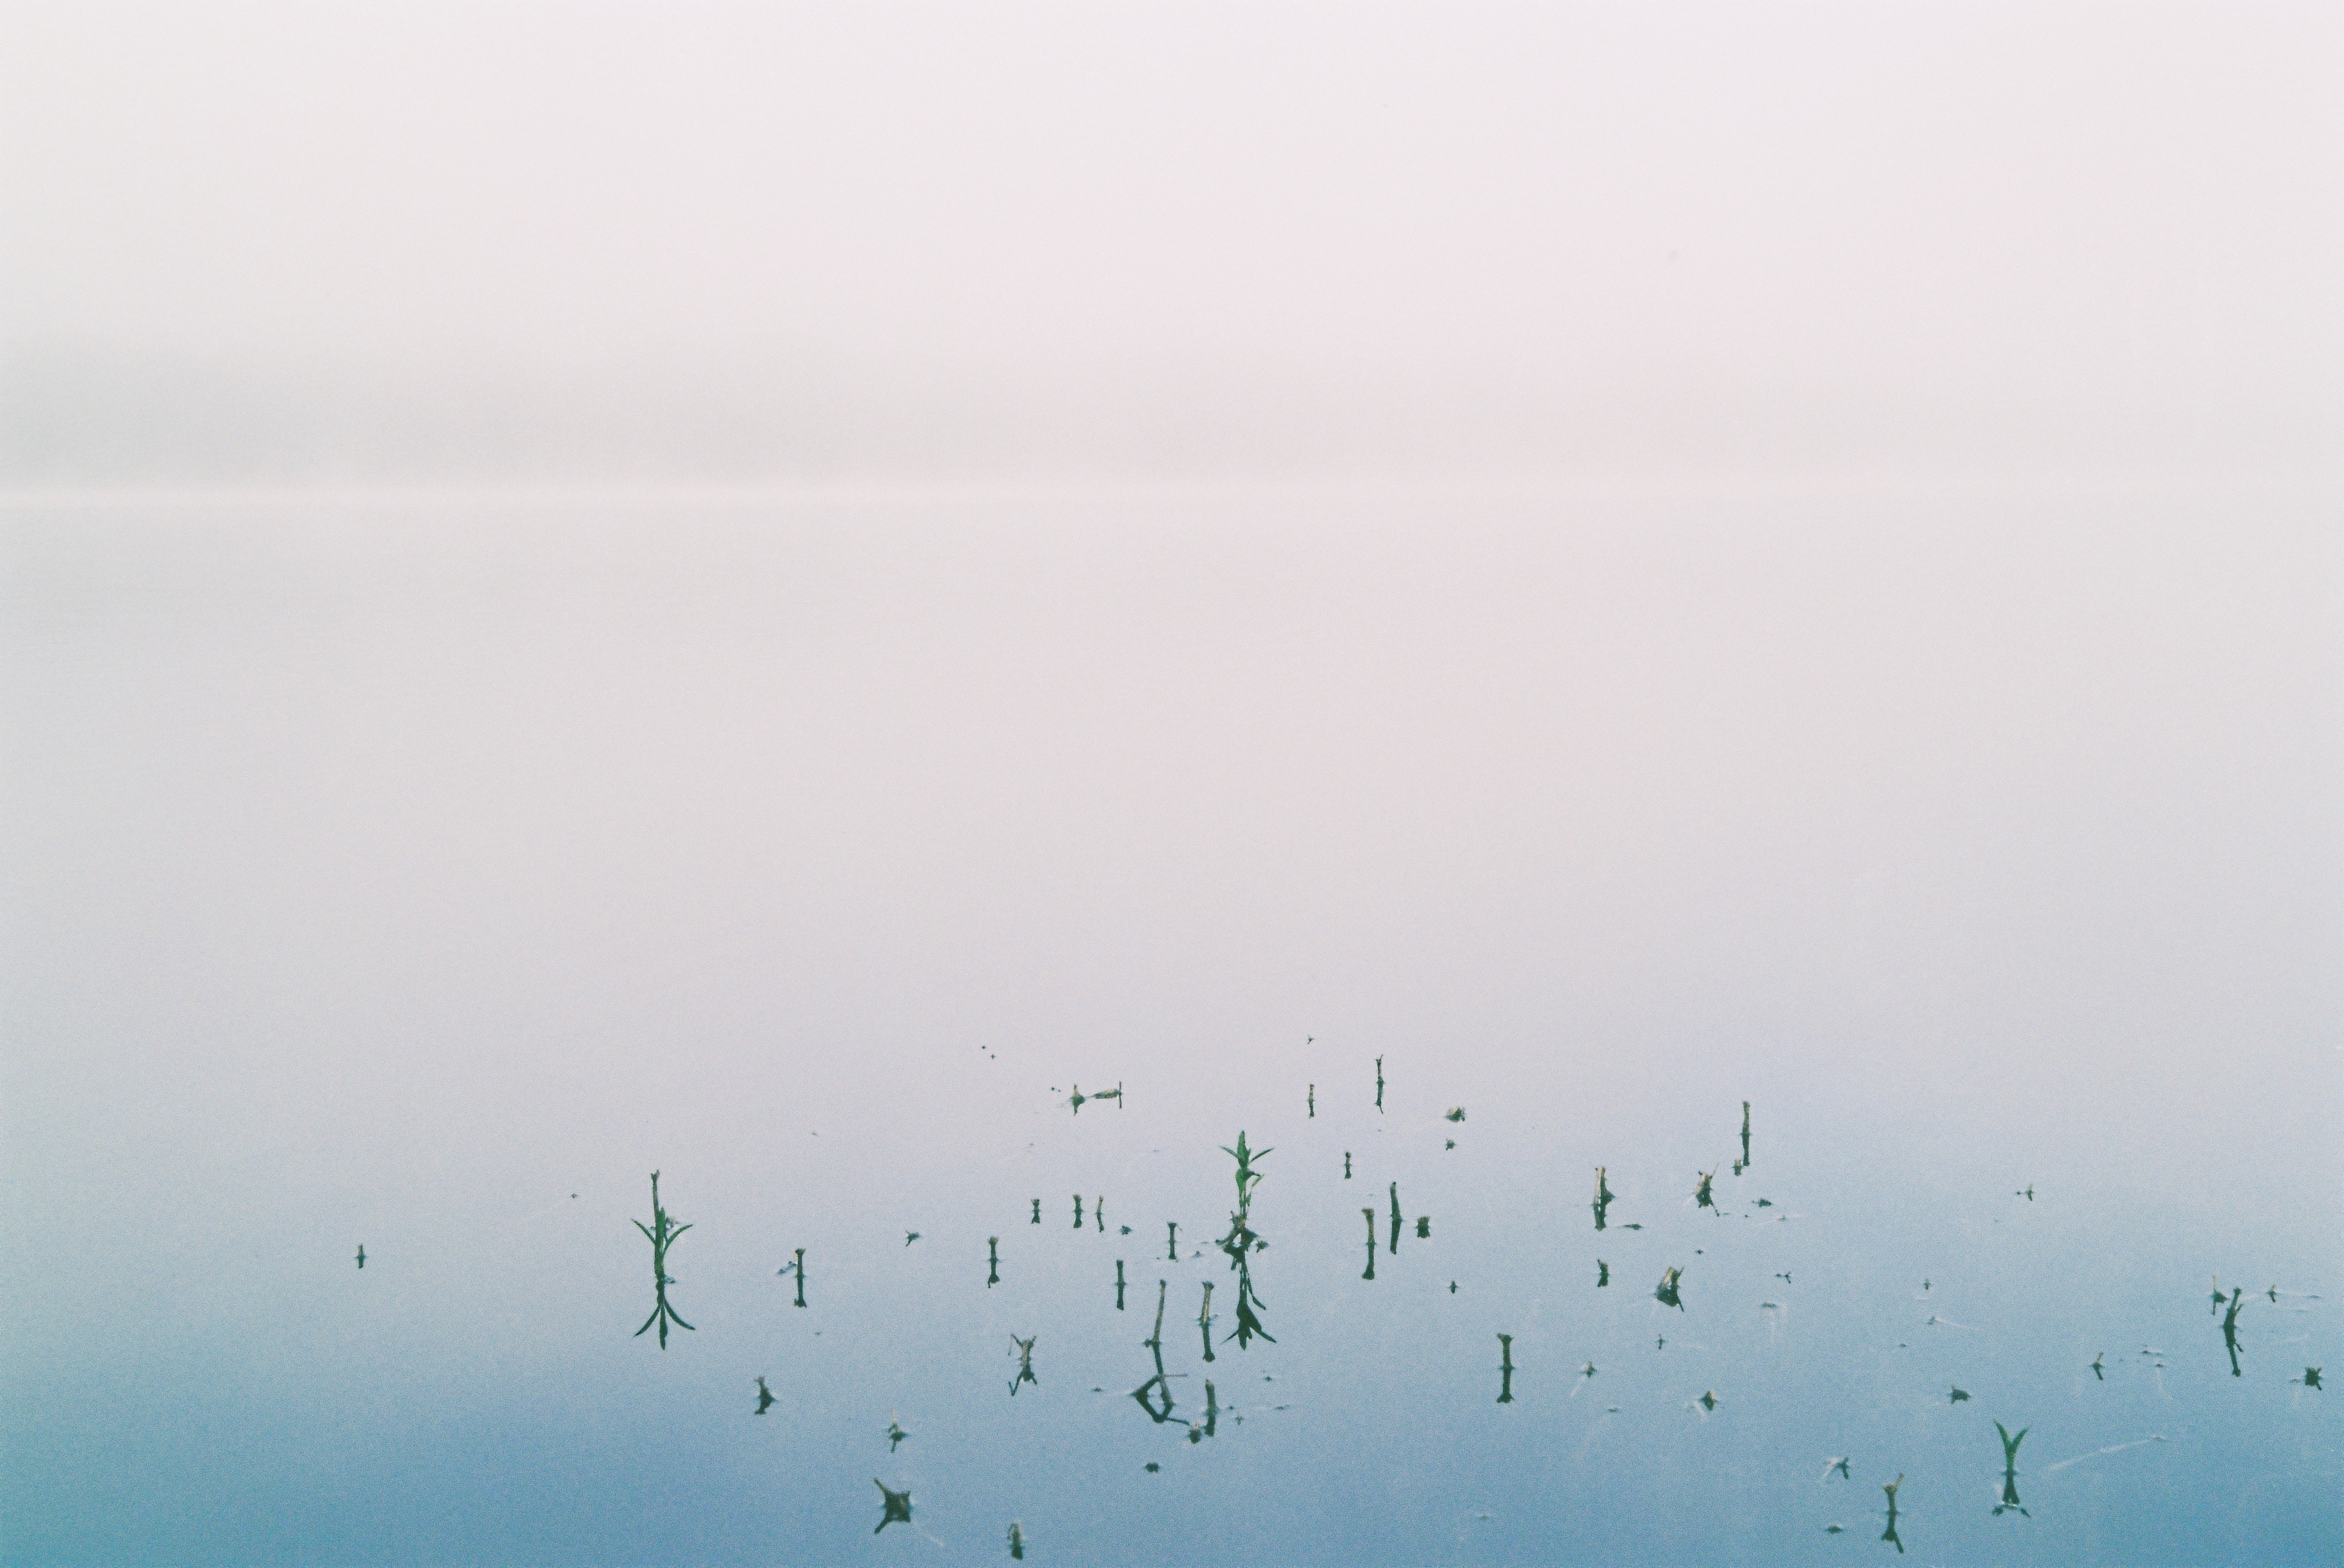 A photograph depicts a lake shrouded in fog